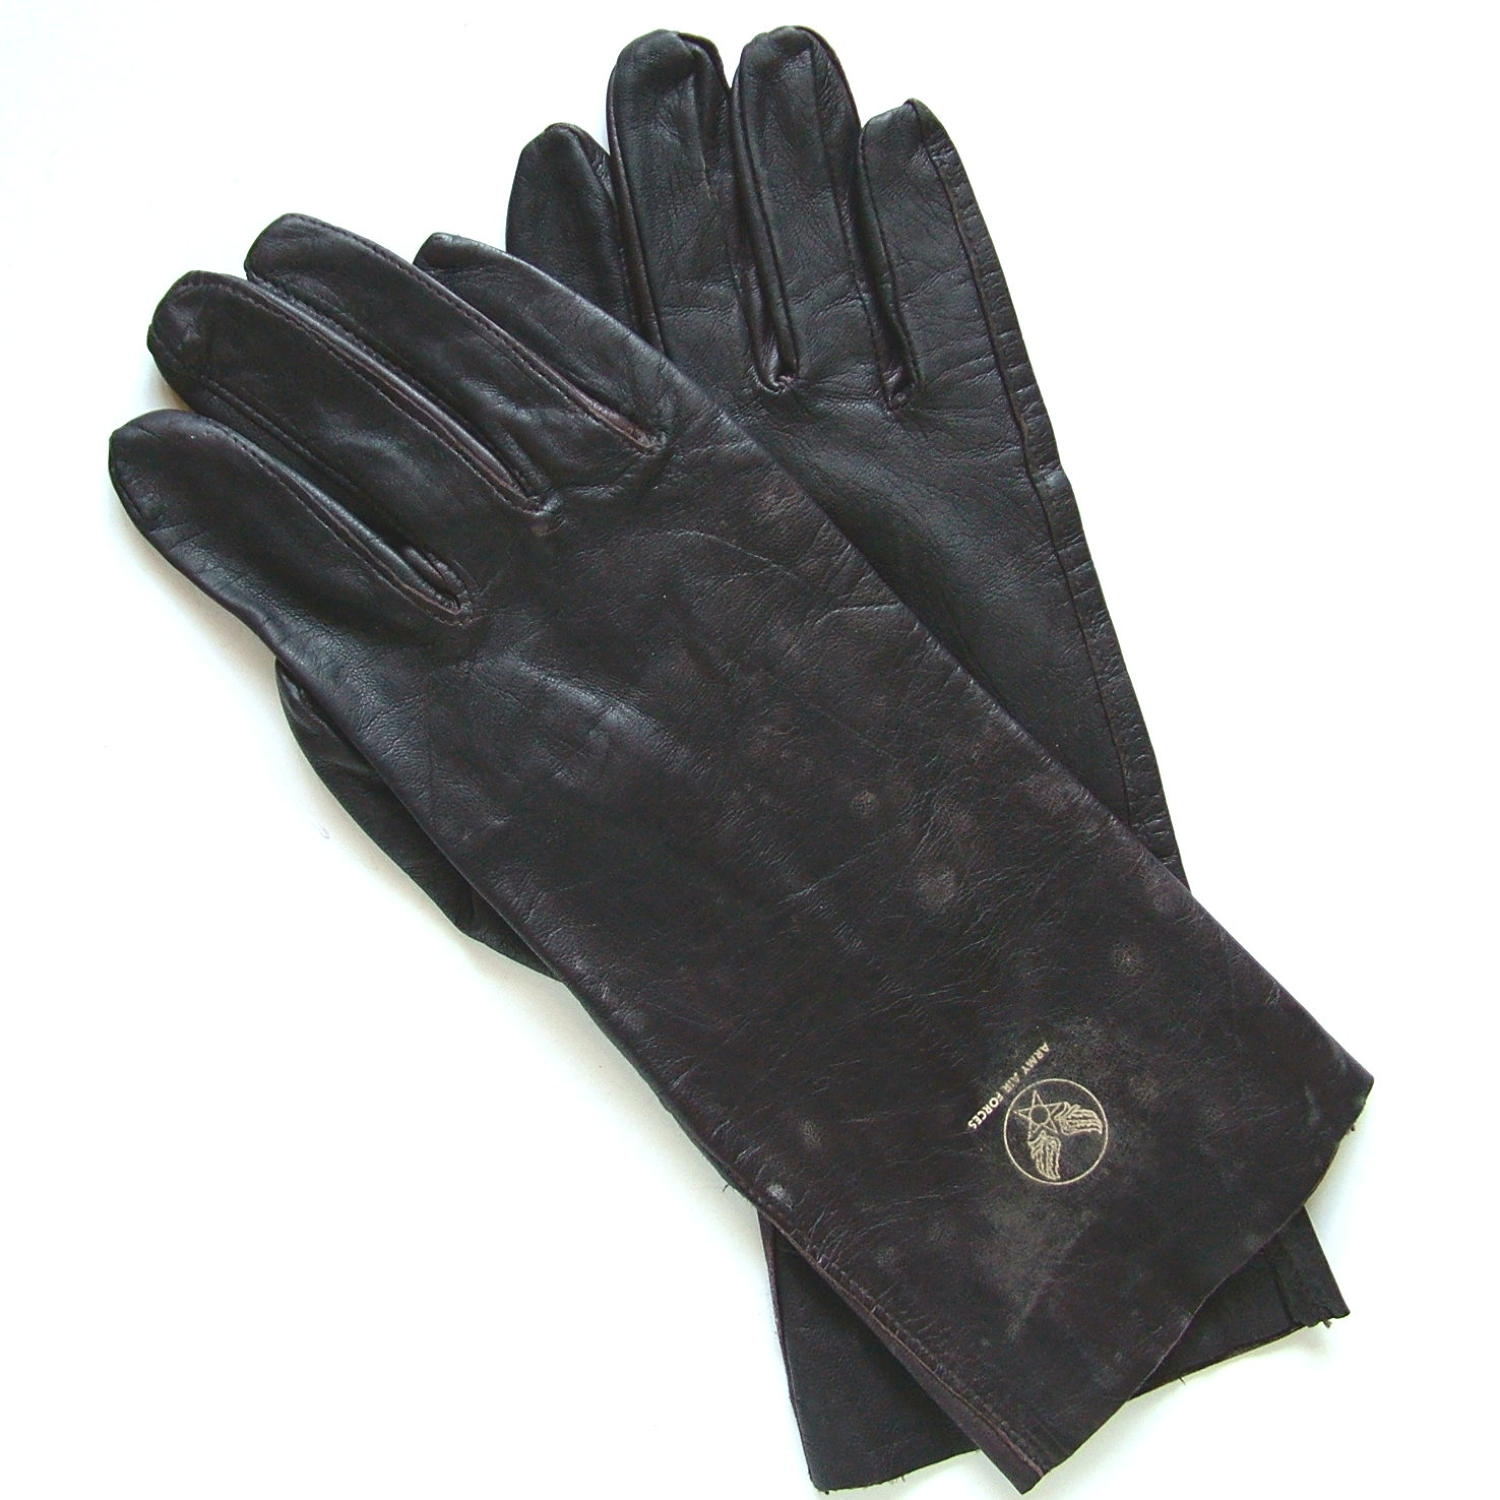 USAAF B-3A Flying gloves